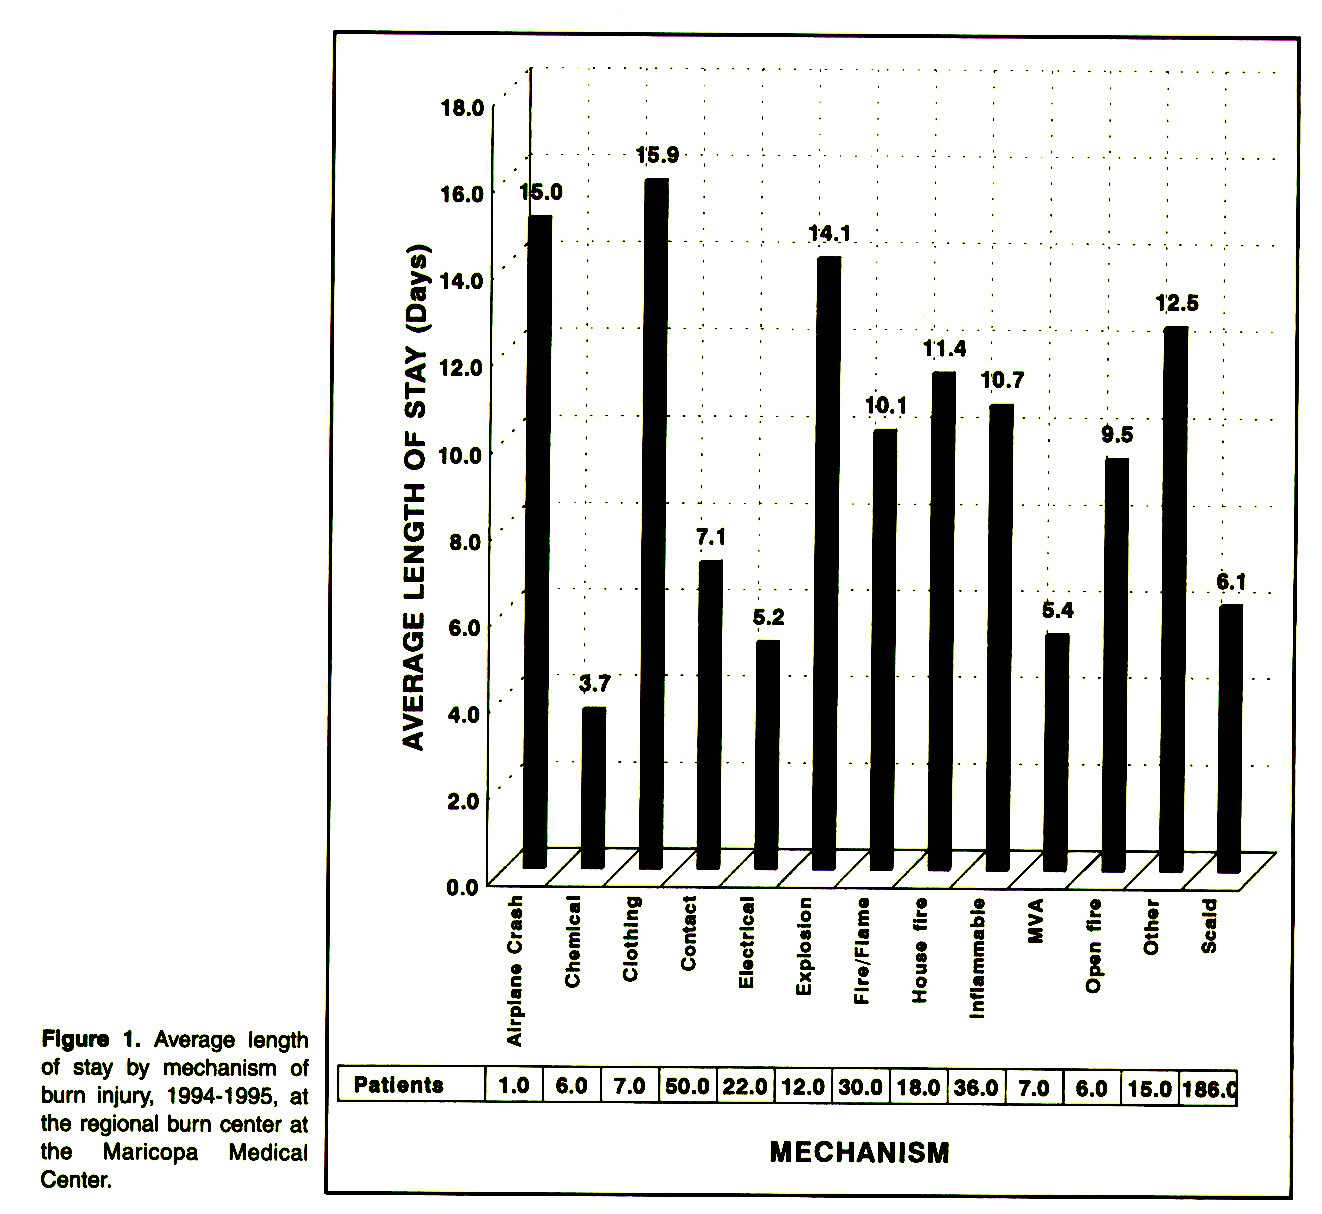 Figure 1. Average length of stay by mechanism of burn injury, 1994-1995, at the regional burn center at the Maricopa Medical Center.